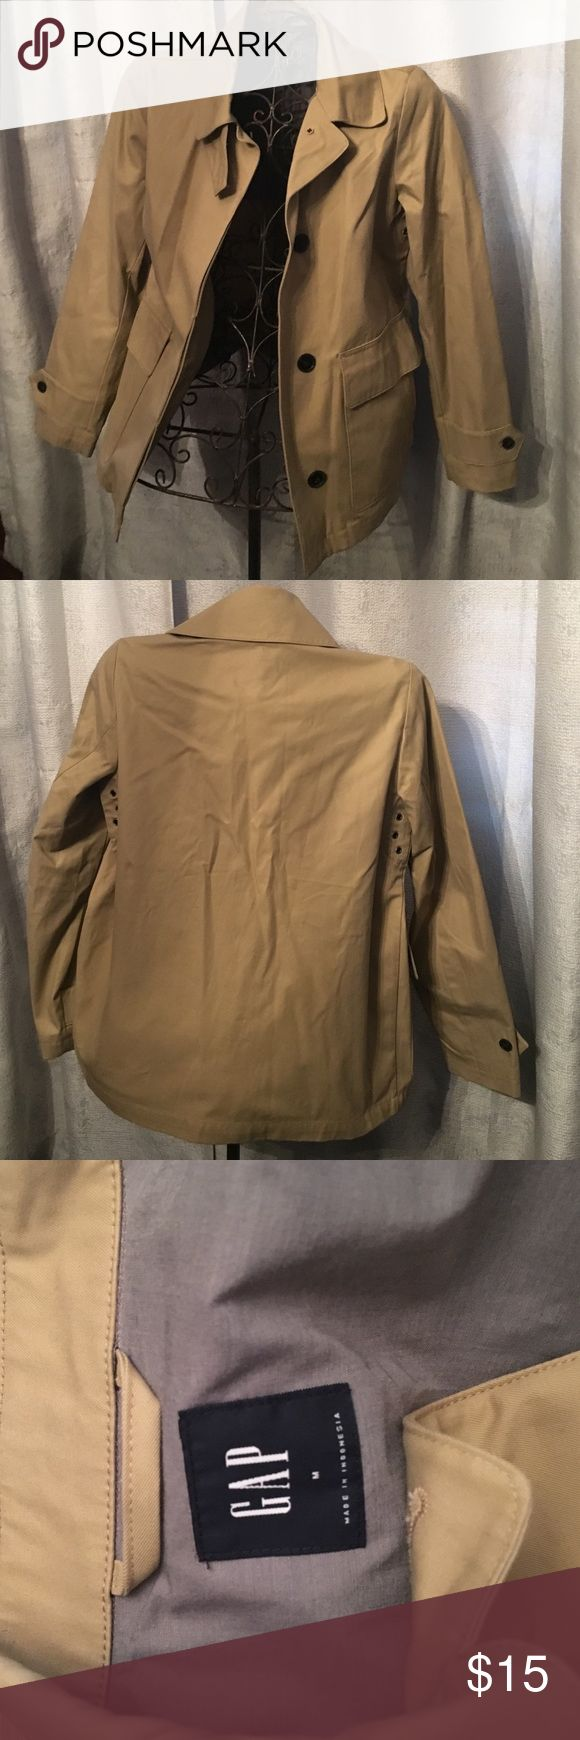 Tan Gap Jacket with large Pockets Sz Med Tan Gap jacket with large outer pockets. Has four pockets in total and armpit grommets. Also has neck closure as pictured. Make me an offer 😊 GAP Jackets & Coats Utility Jackets